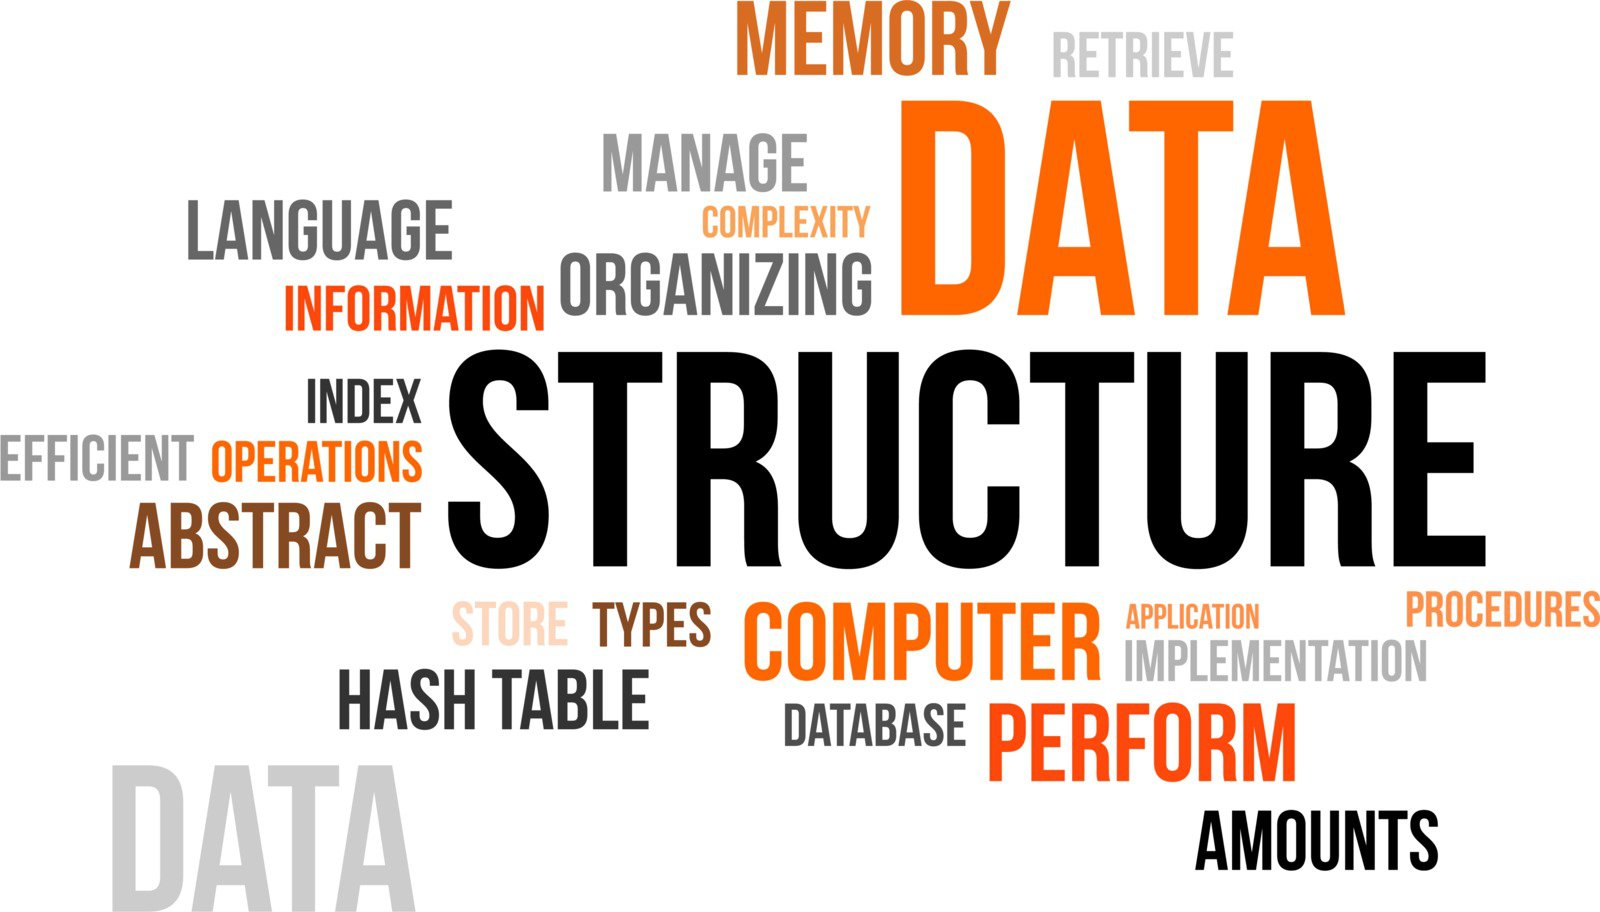 What is Structured Data and should it be used?